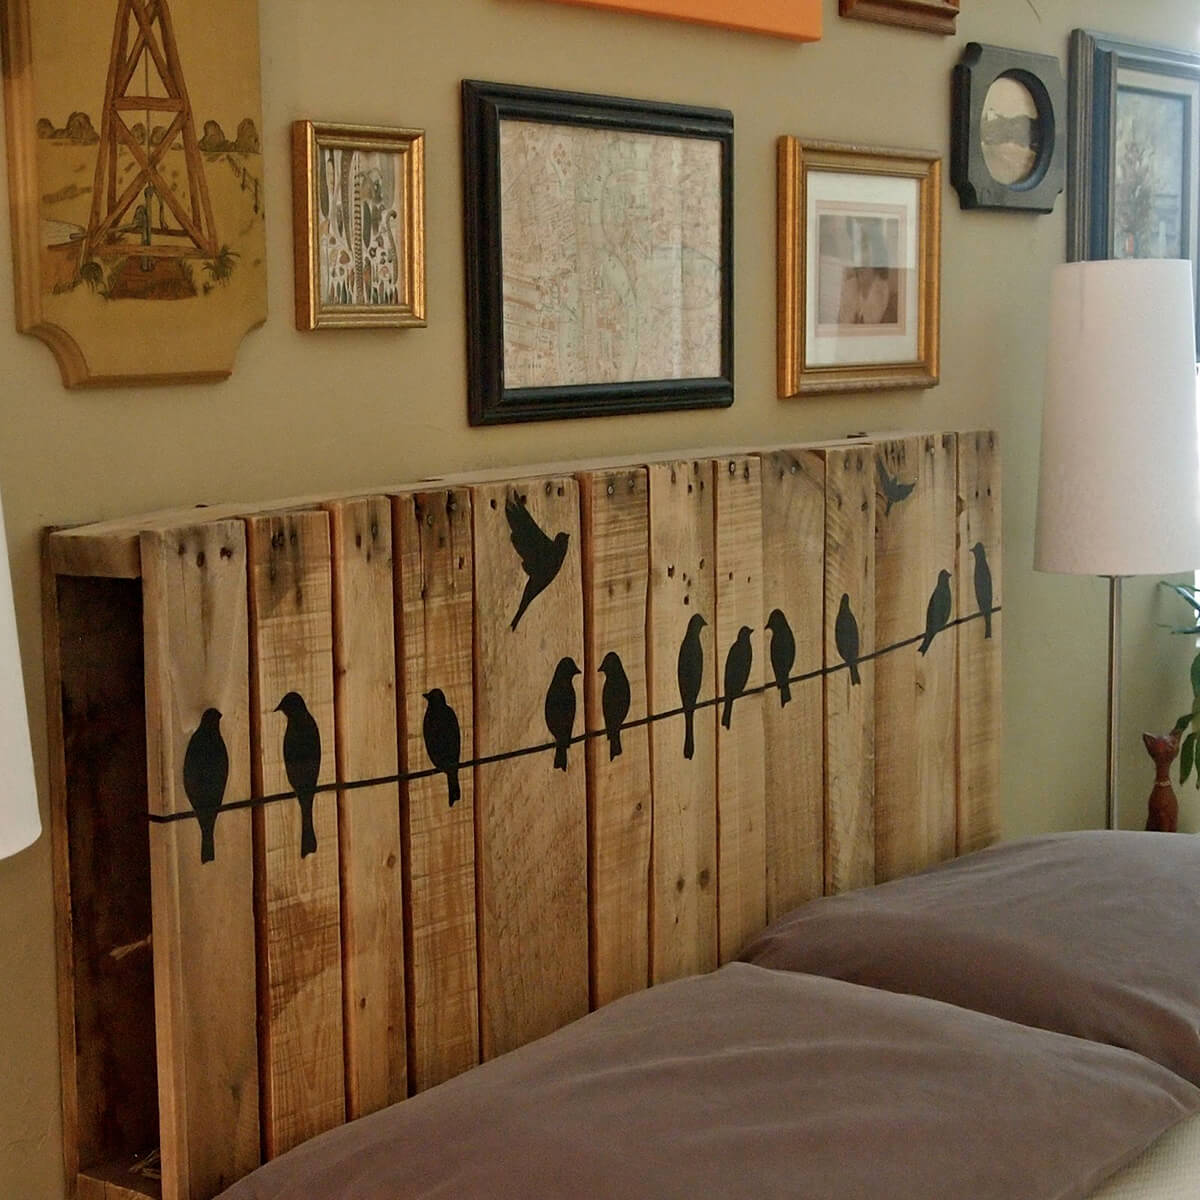 Cute Pallet Headboard with Birds-on-a-Wire Silouhette